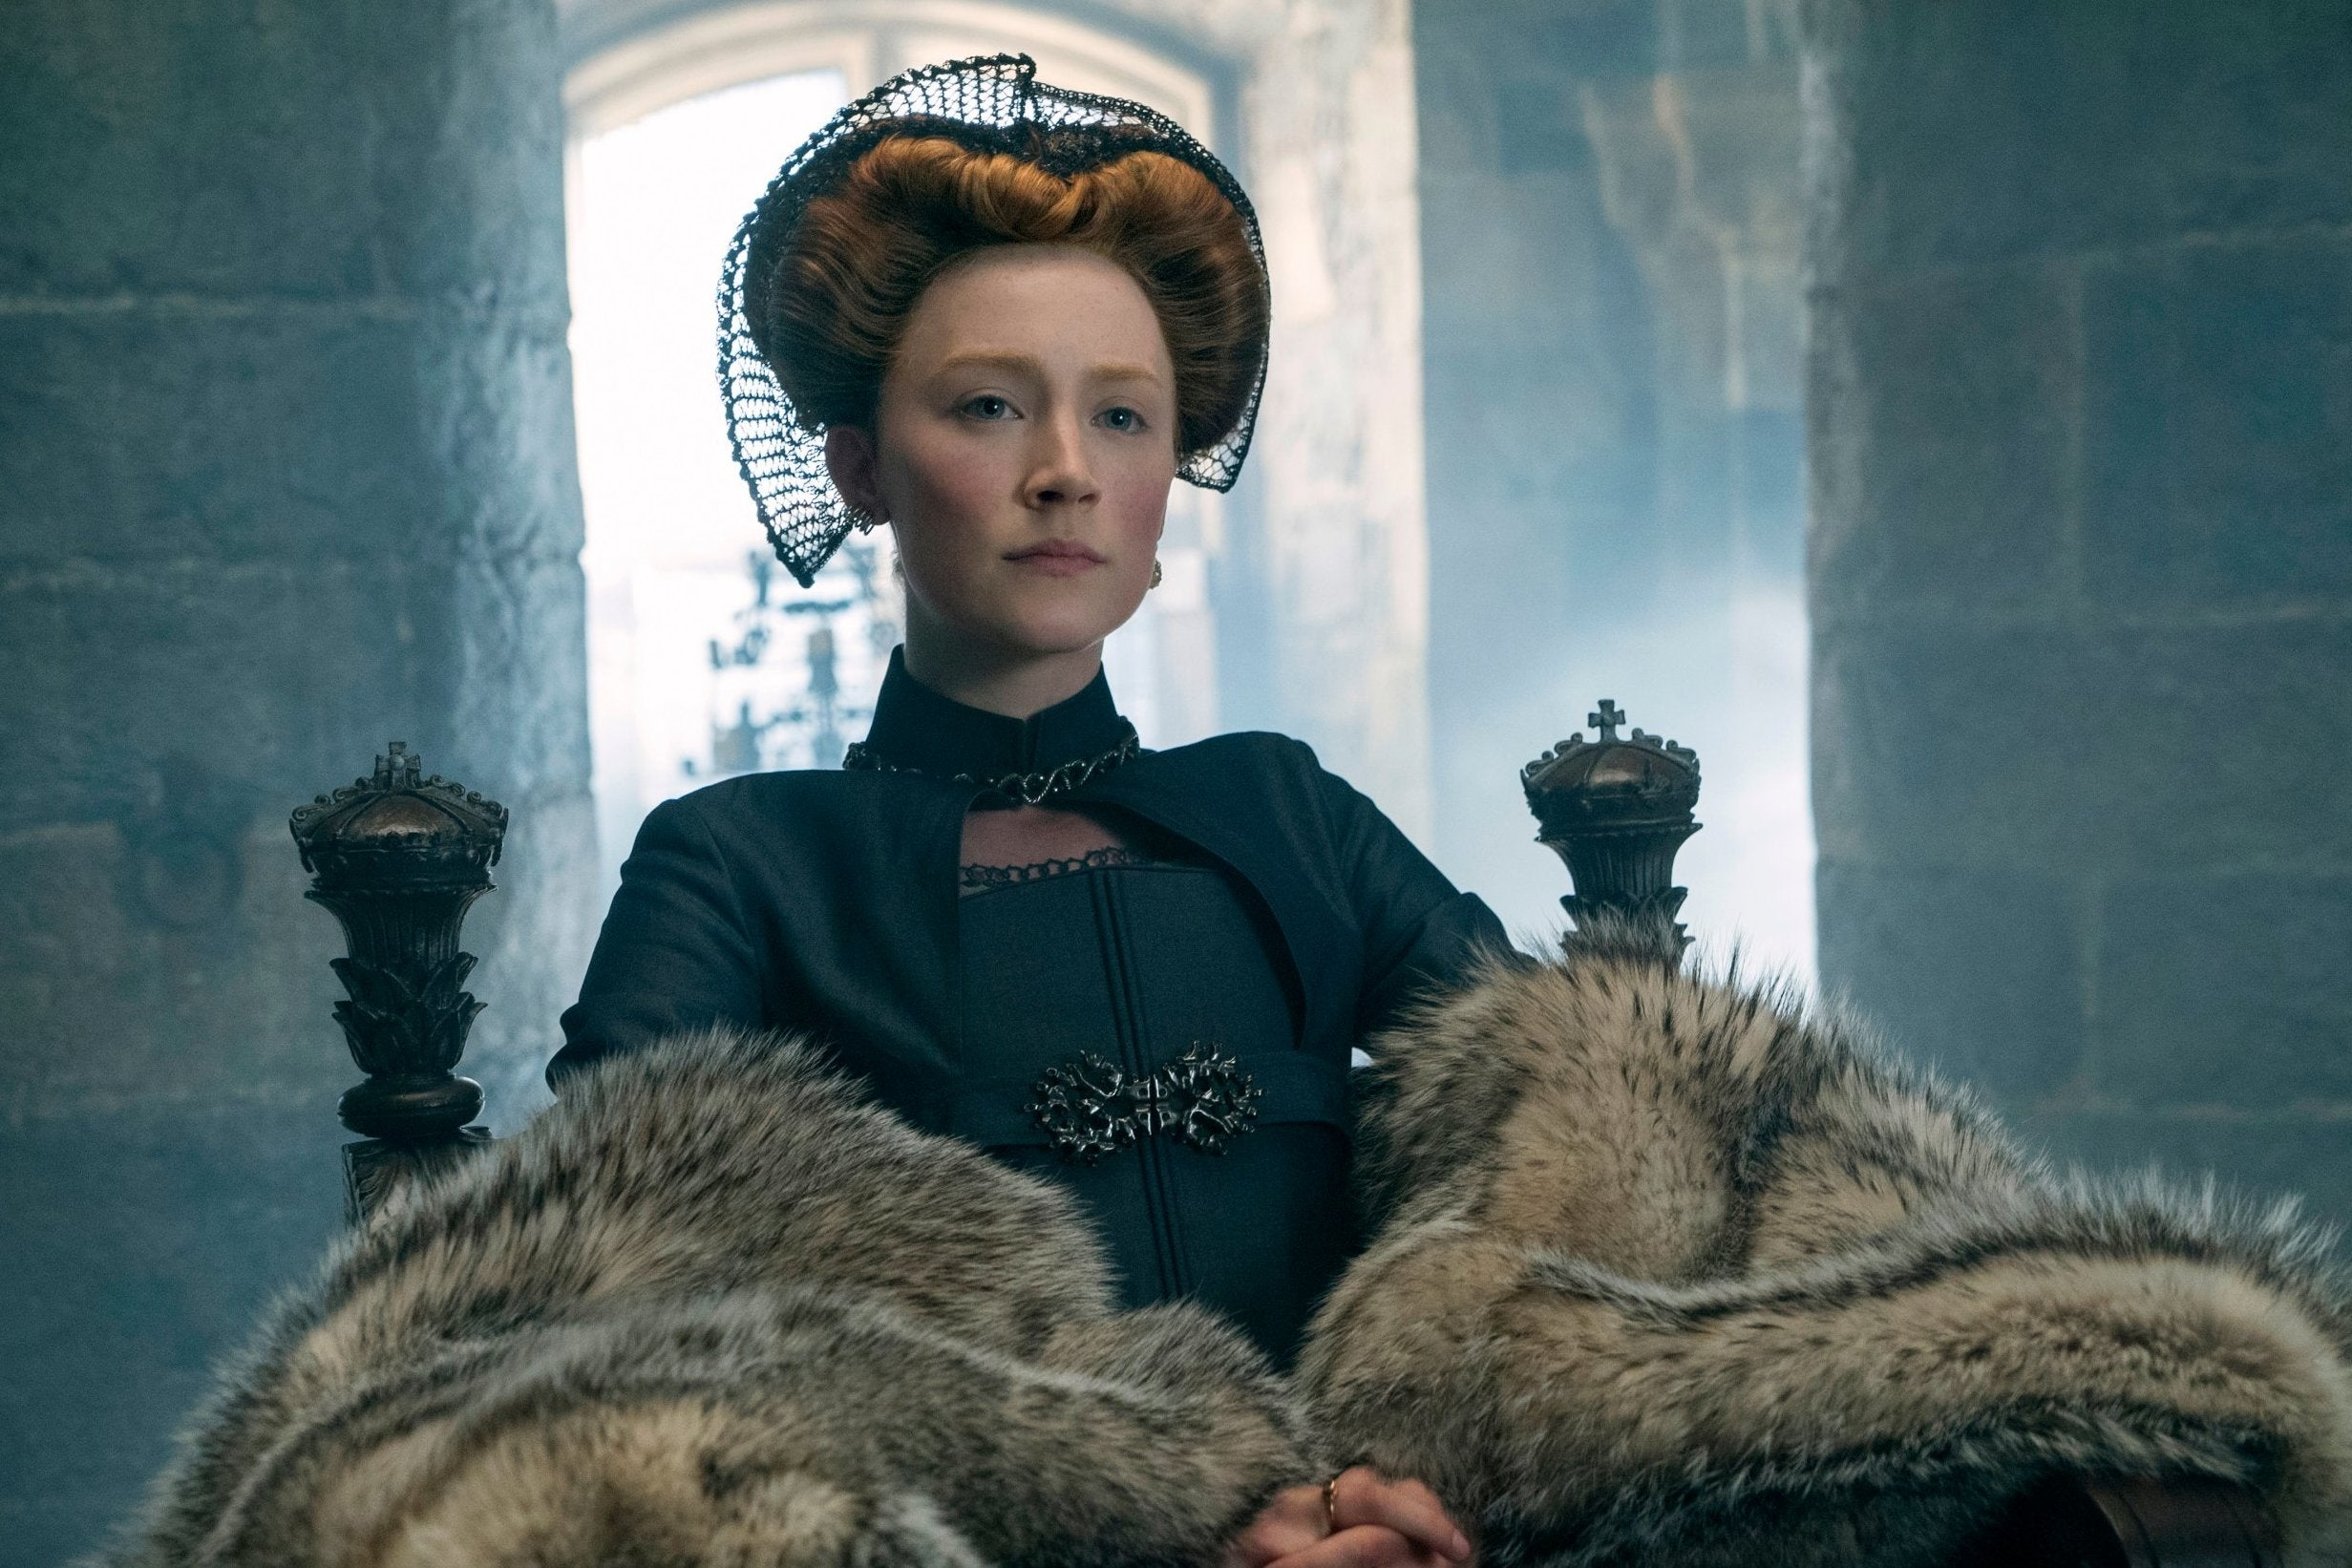 Mary Queen of Scots: How historically accurate is it? | The